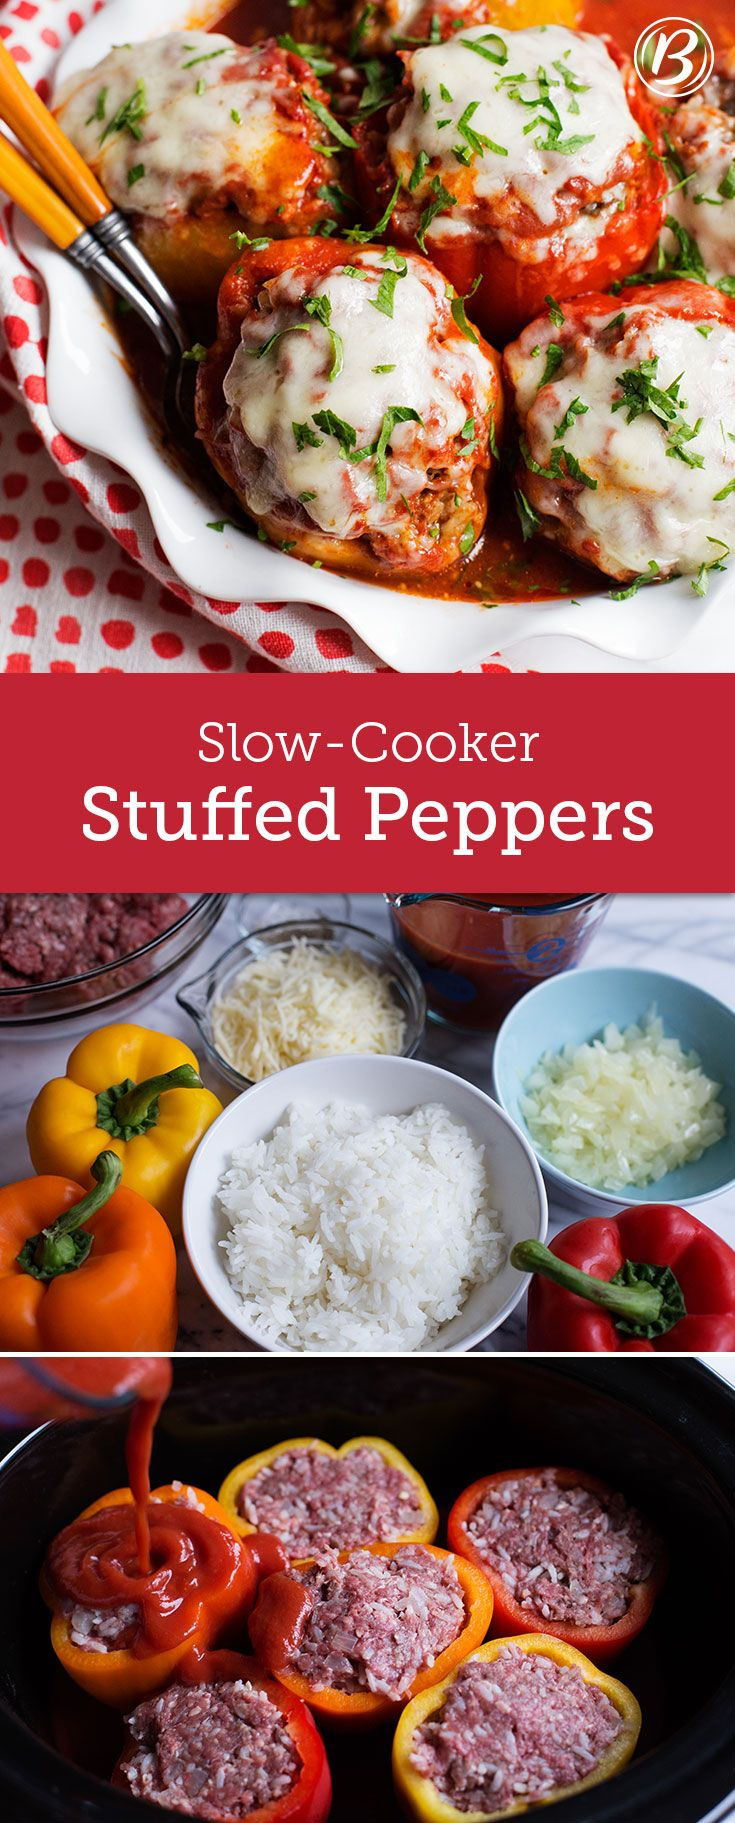 Classic beef- and rice-stuffed peppers are now easier to make than ever with some help from your slow cooker. Use any good melting